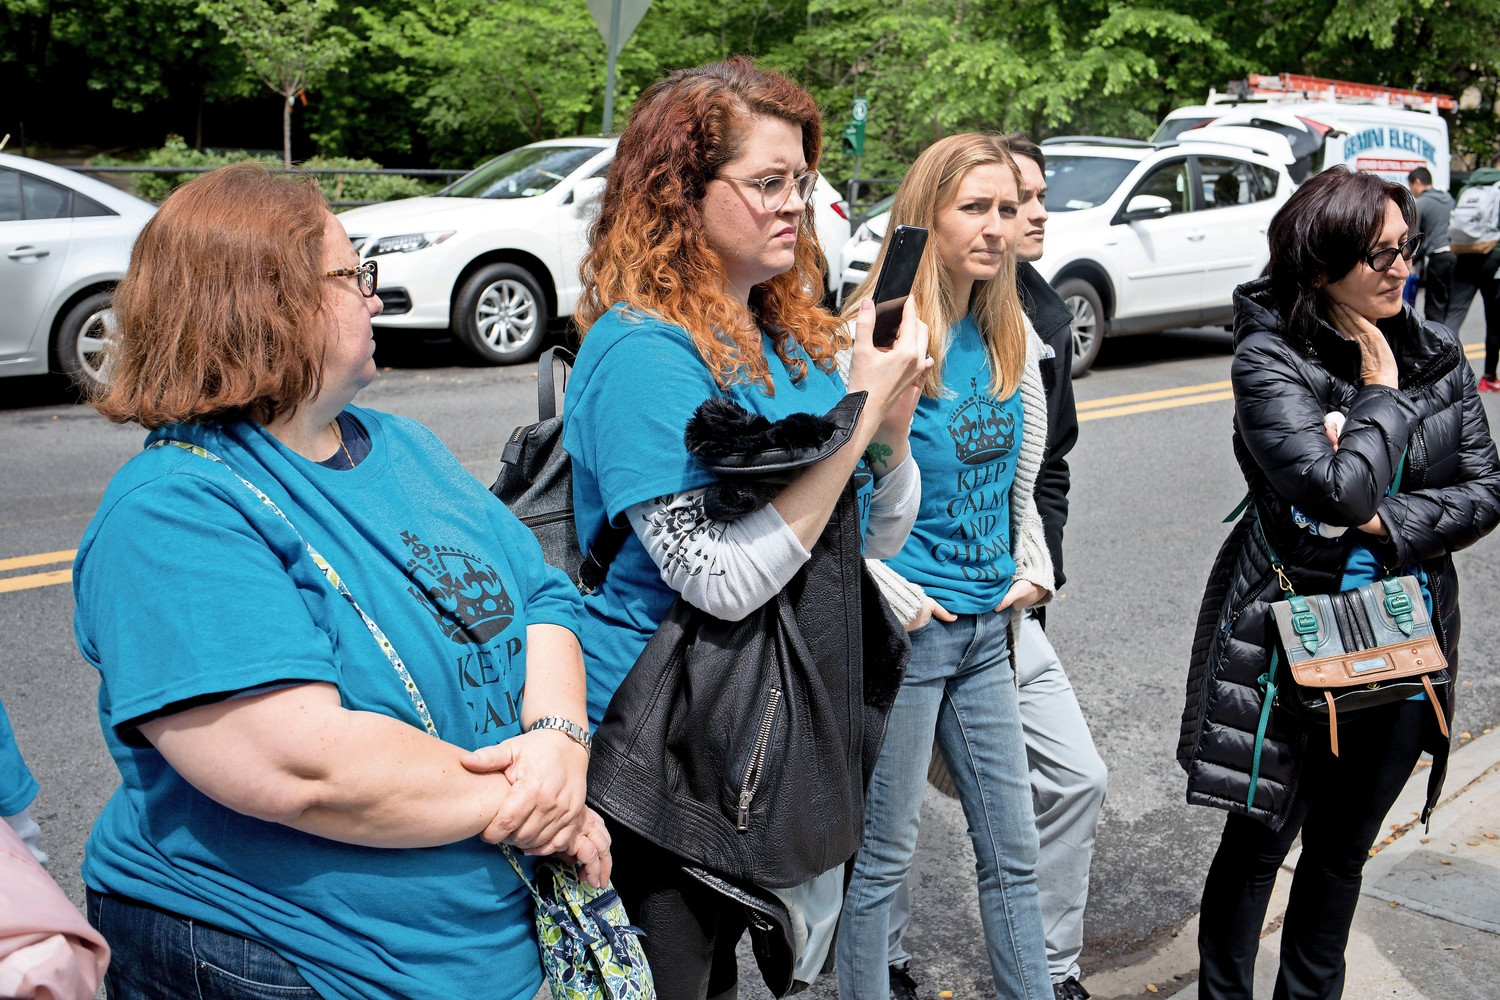 Morgan Brady films her aunt Ann Marie Flynn speaking to supporters outside of Manhattan College. A professor of chemical engineering, Flynn attended her preliminary termination hearing.